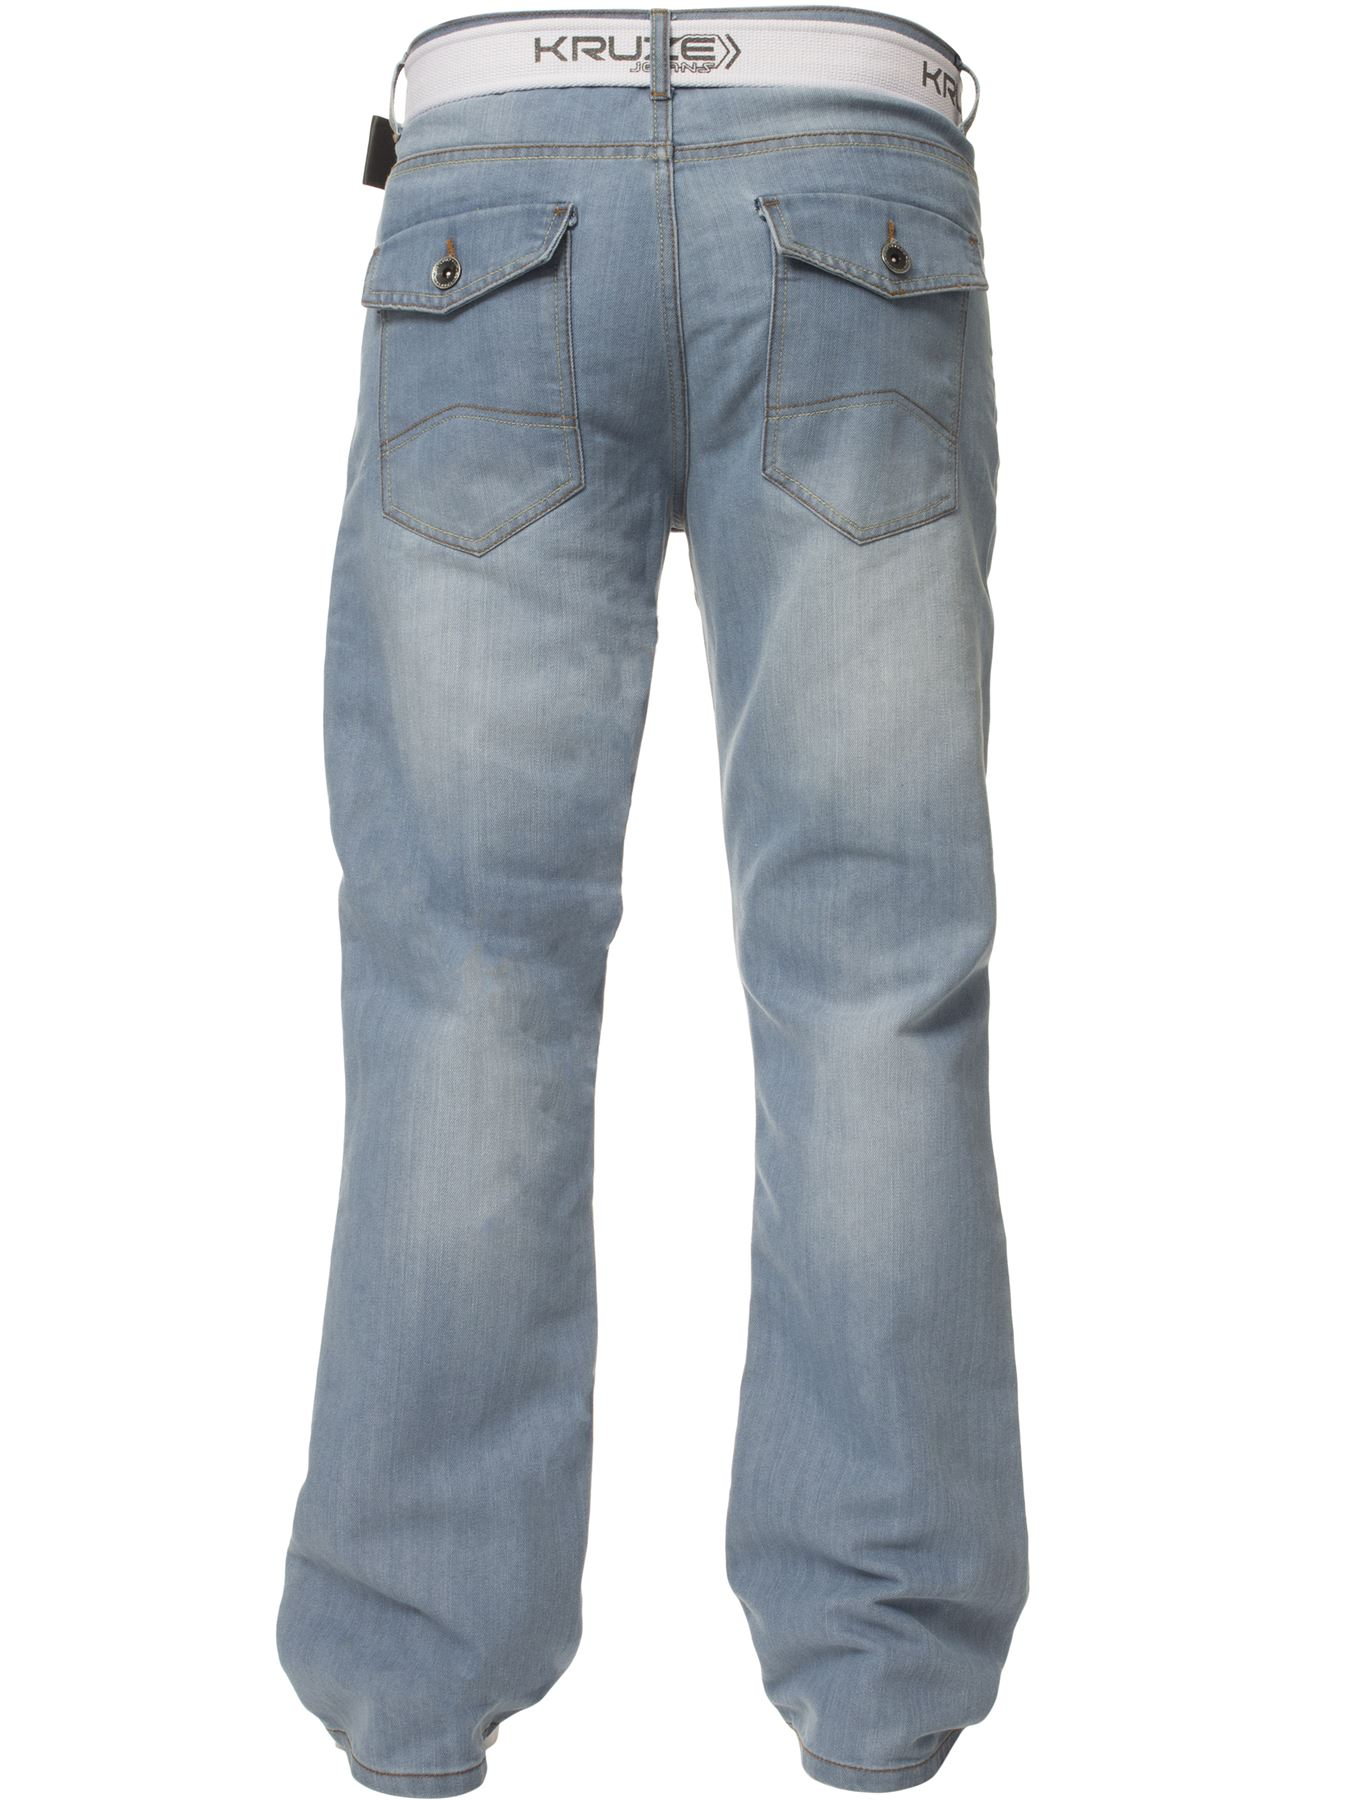 Kruze-Denim-New-Mens-Bootcut-Jeans-Wide-Leg-Flare-Pants-King-Big-All-Waist-Sizes thumbnail 19